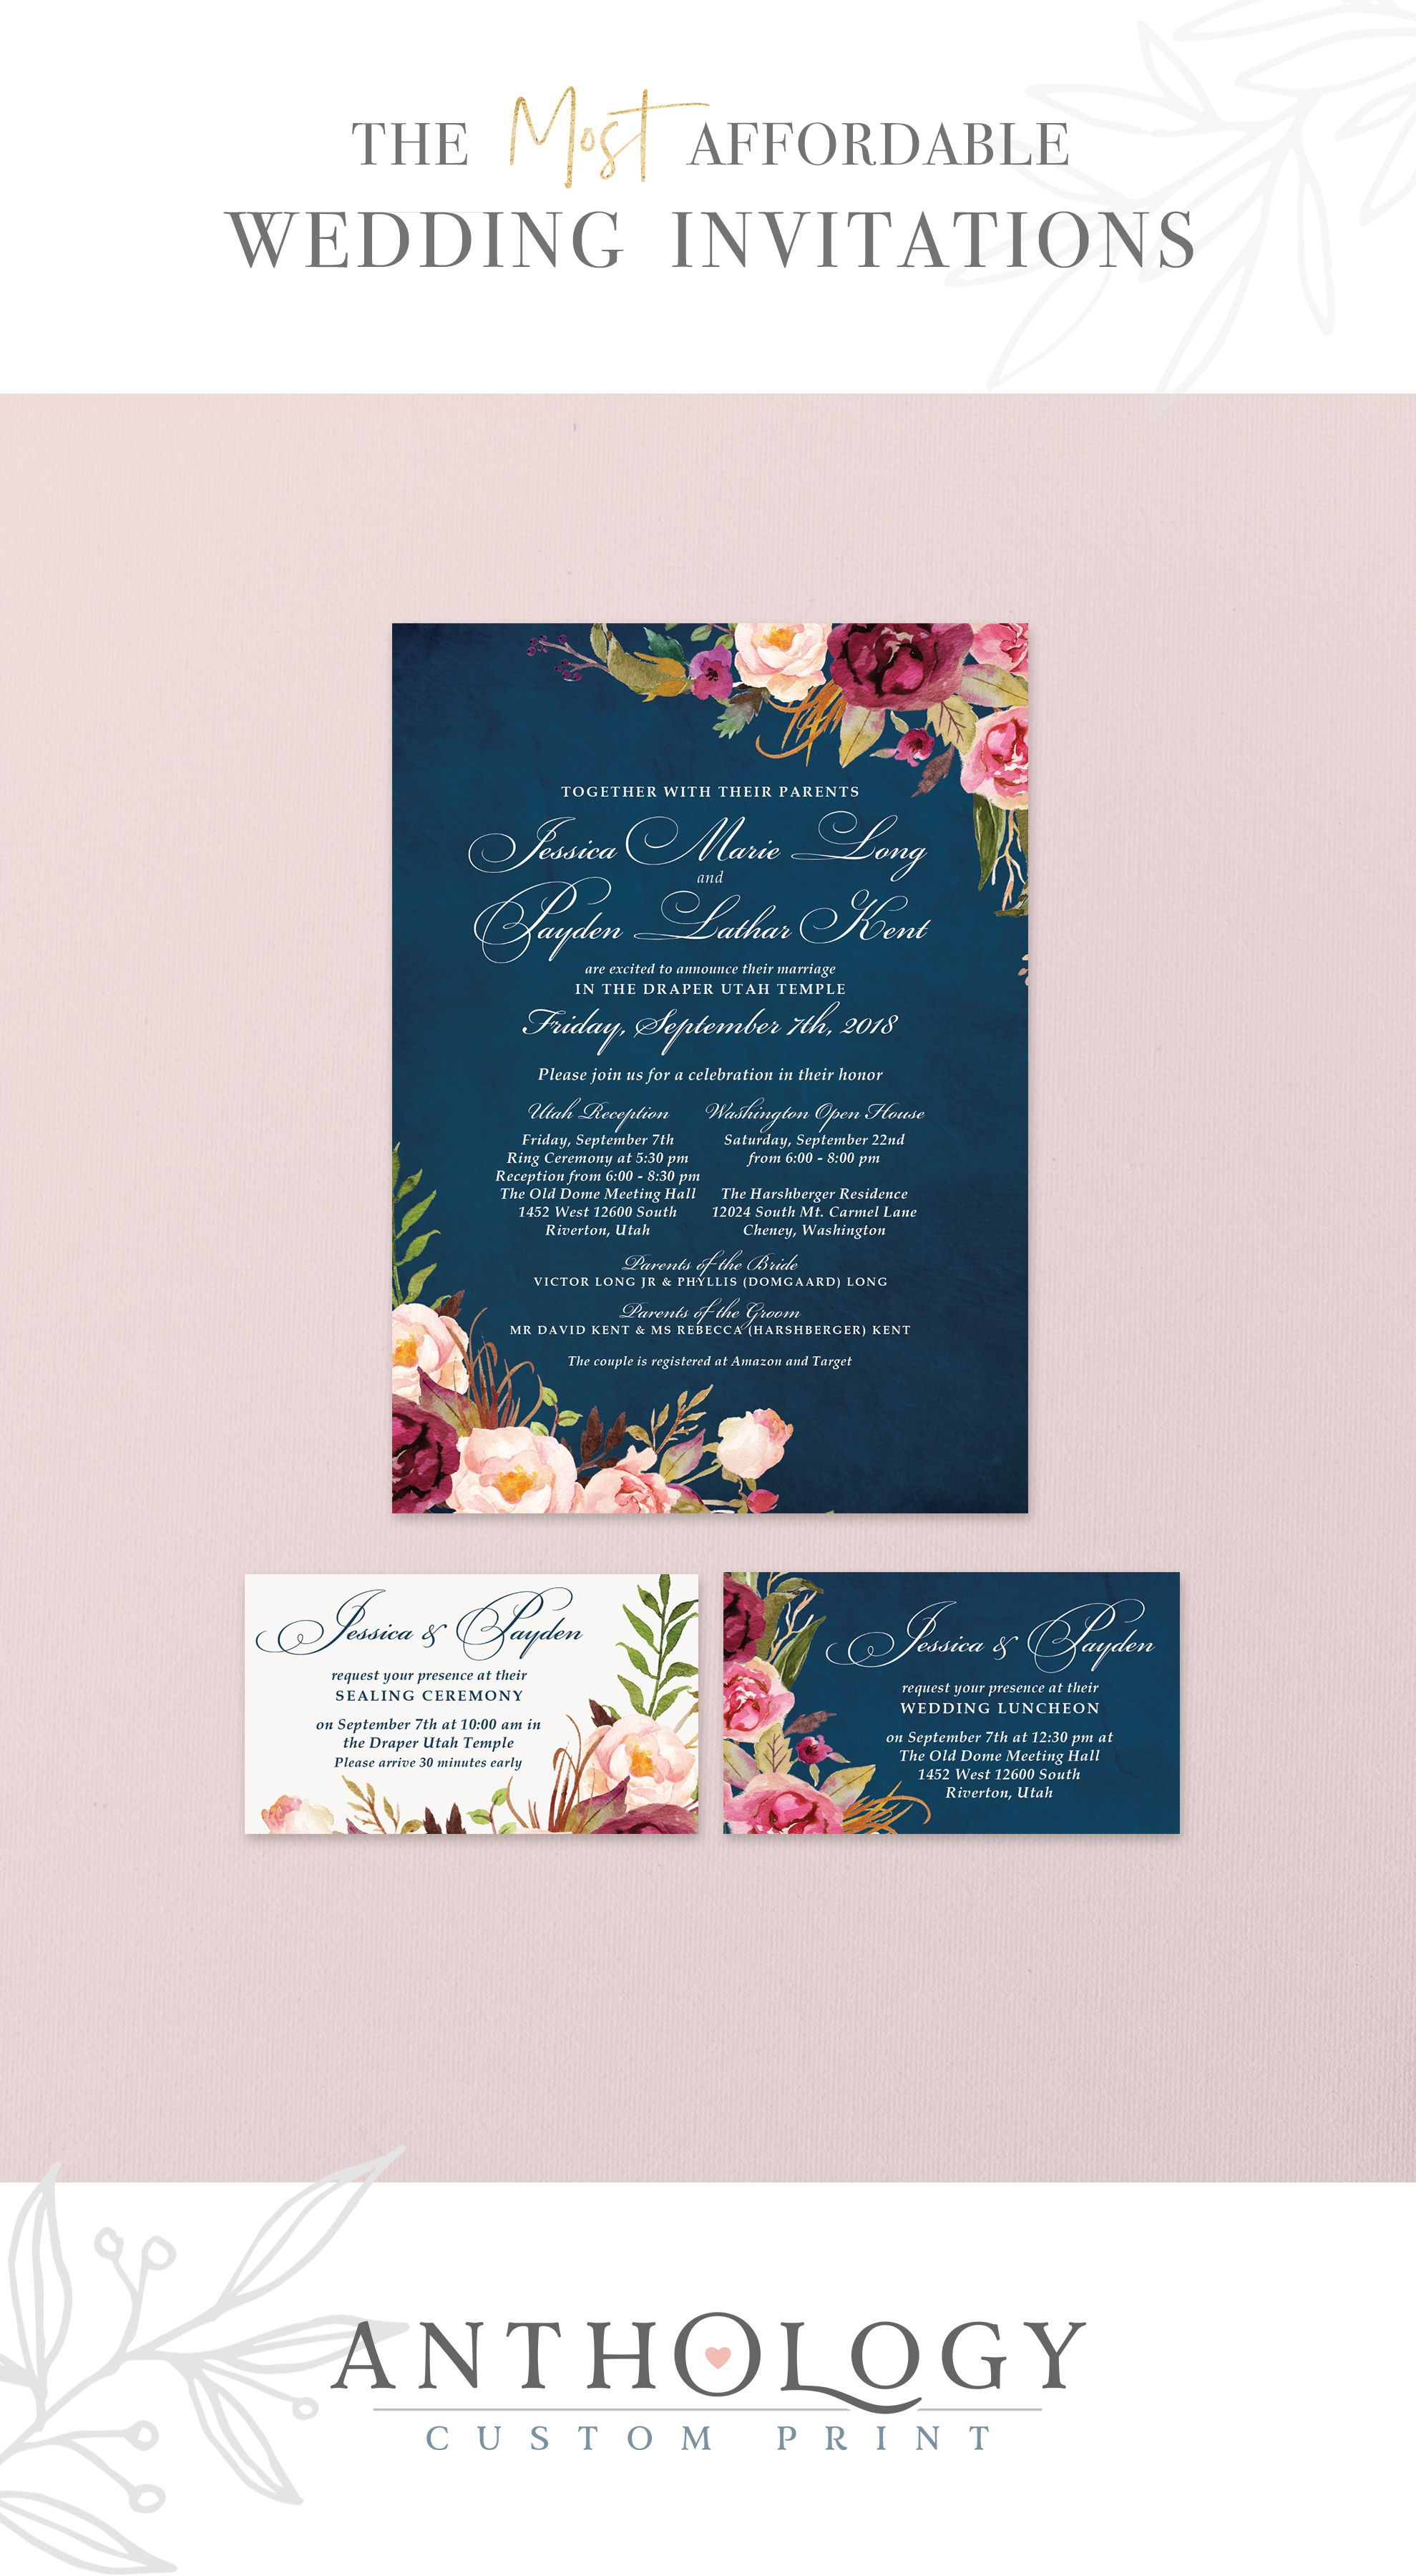 Watercolor Floral Wedding Invites Affordable Wedding Invitations Anthology Flower Wedding Invitation Fresh Wedding Flowers Affordable Wedding Invitations